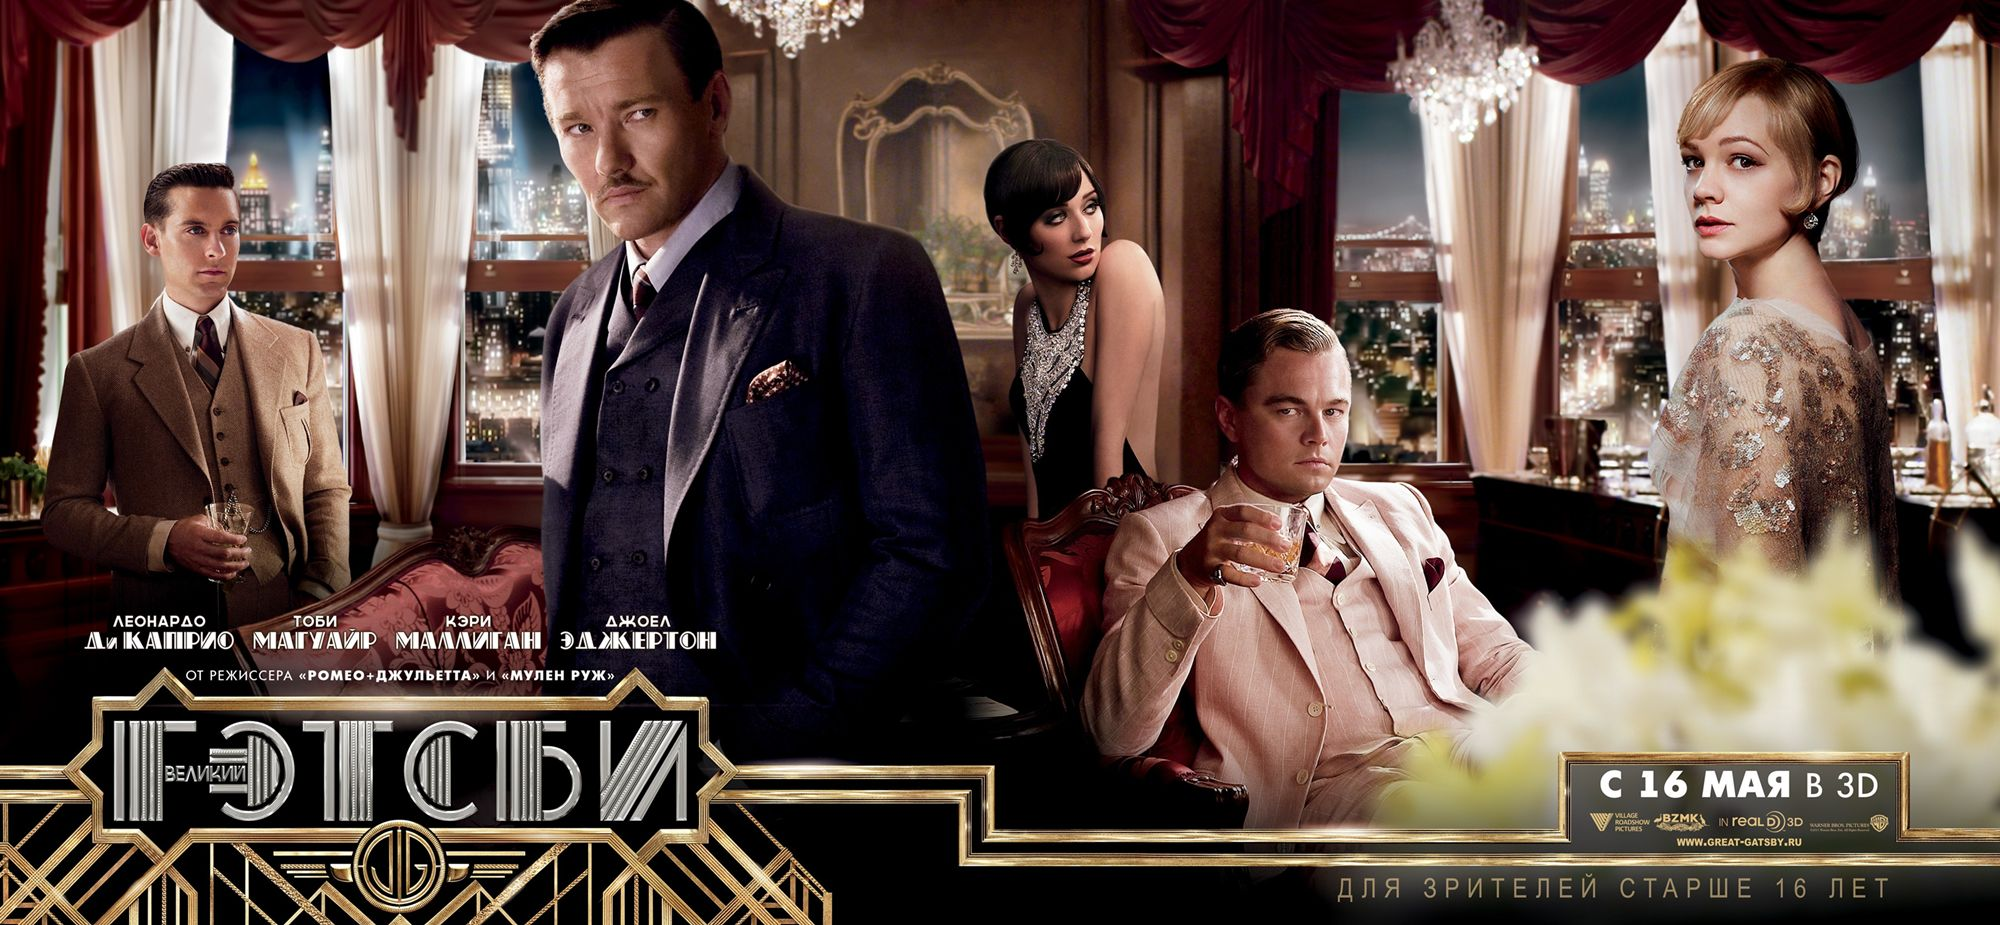 Going To The Cinema Alone…. Specifically For The Great ... The Great Gatsby 2013 Poster